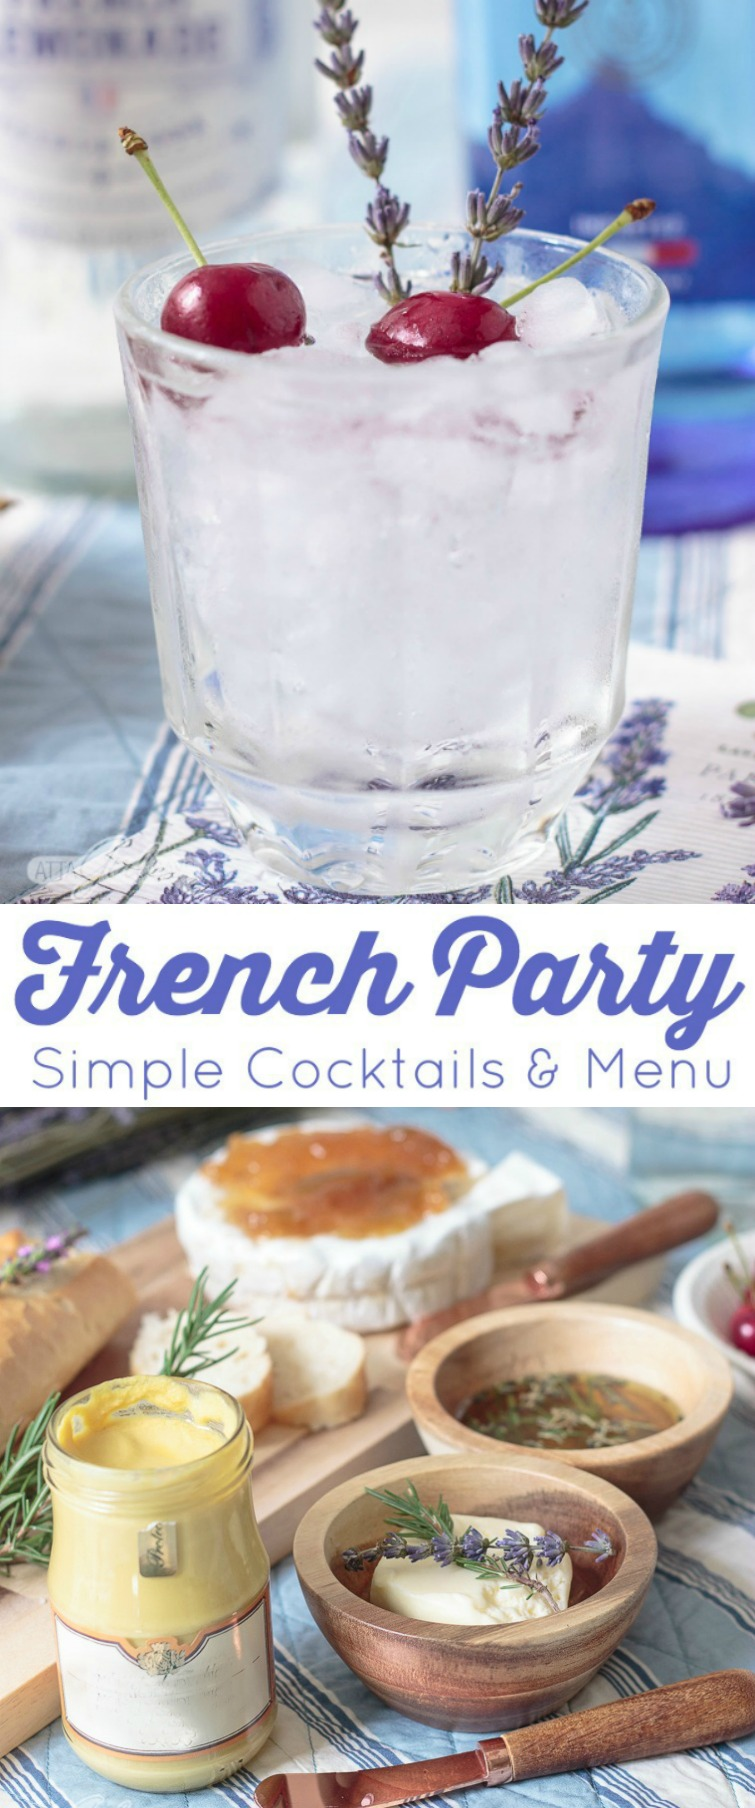 Msg 4 21+: #ad Master the art of effortless entertaining with a French-inspired cocktail party, featuring easy-to-prepare appetizers and a simple vodka lemonade cocktail, made with award-winning French @PinnacleVodka and garnished with lavender. Pinnacle® Original Vodka is an exquisite, smooth, award-winning French vodka that is crafted using the highest quality French ingredients #pinnaclevodka #frenchentertaining #frenchfood #lemonadecocktail